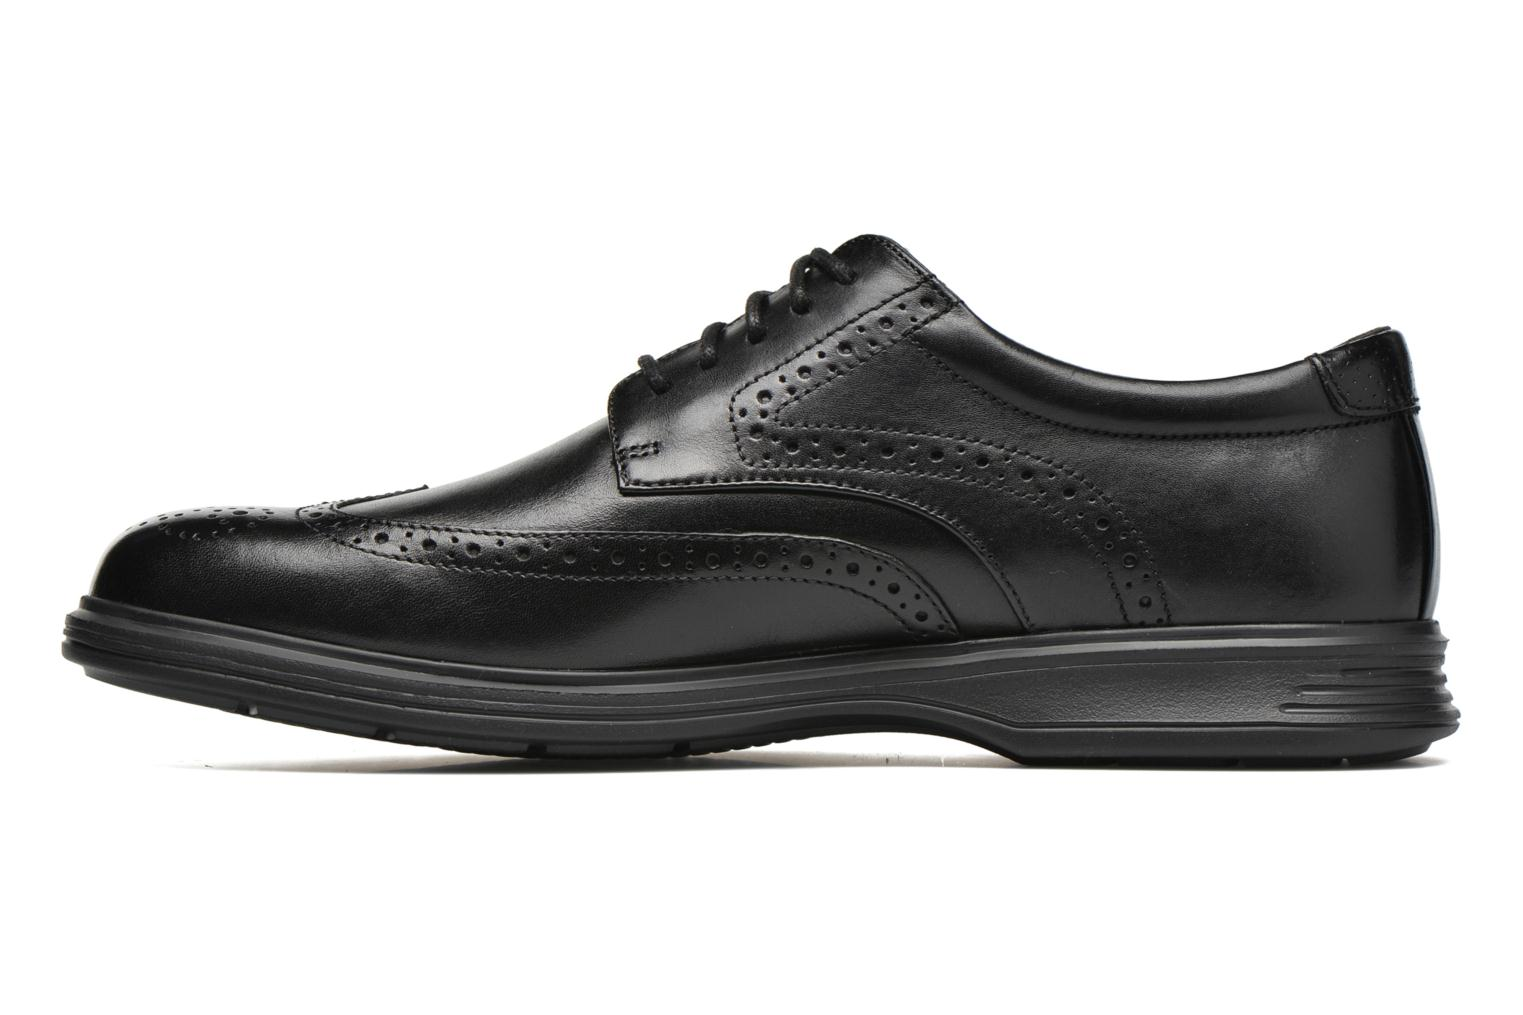 Zapatos con cordones Rockport DP2 Light Wing Tip Negro vista de frente